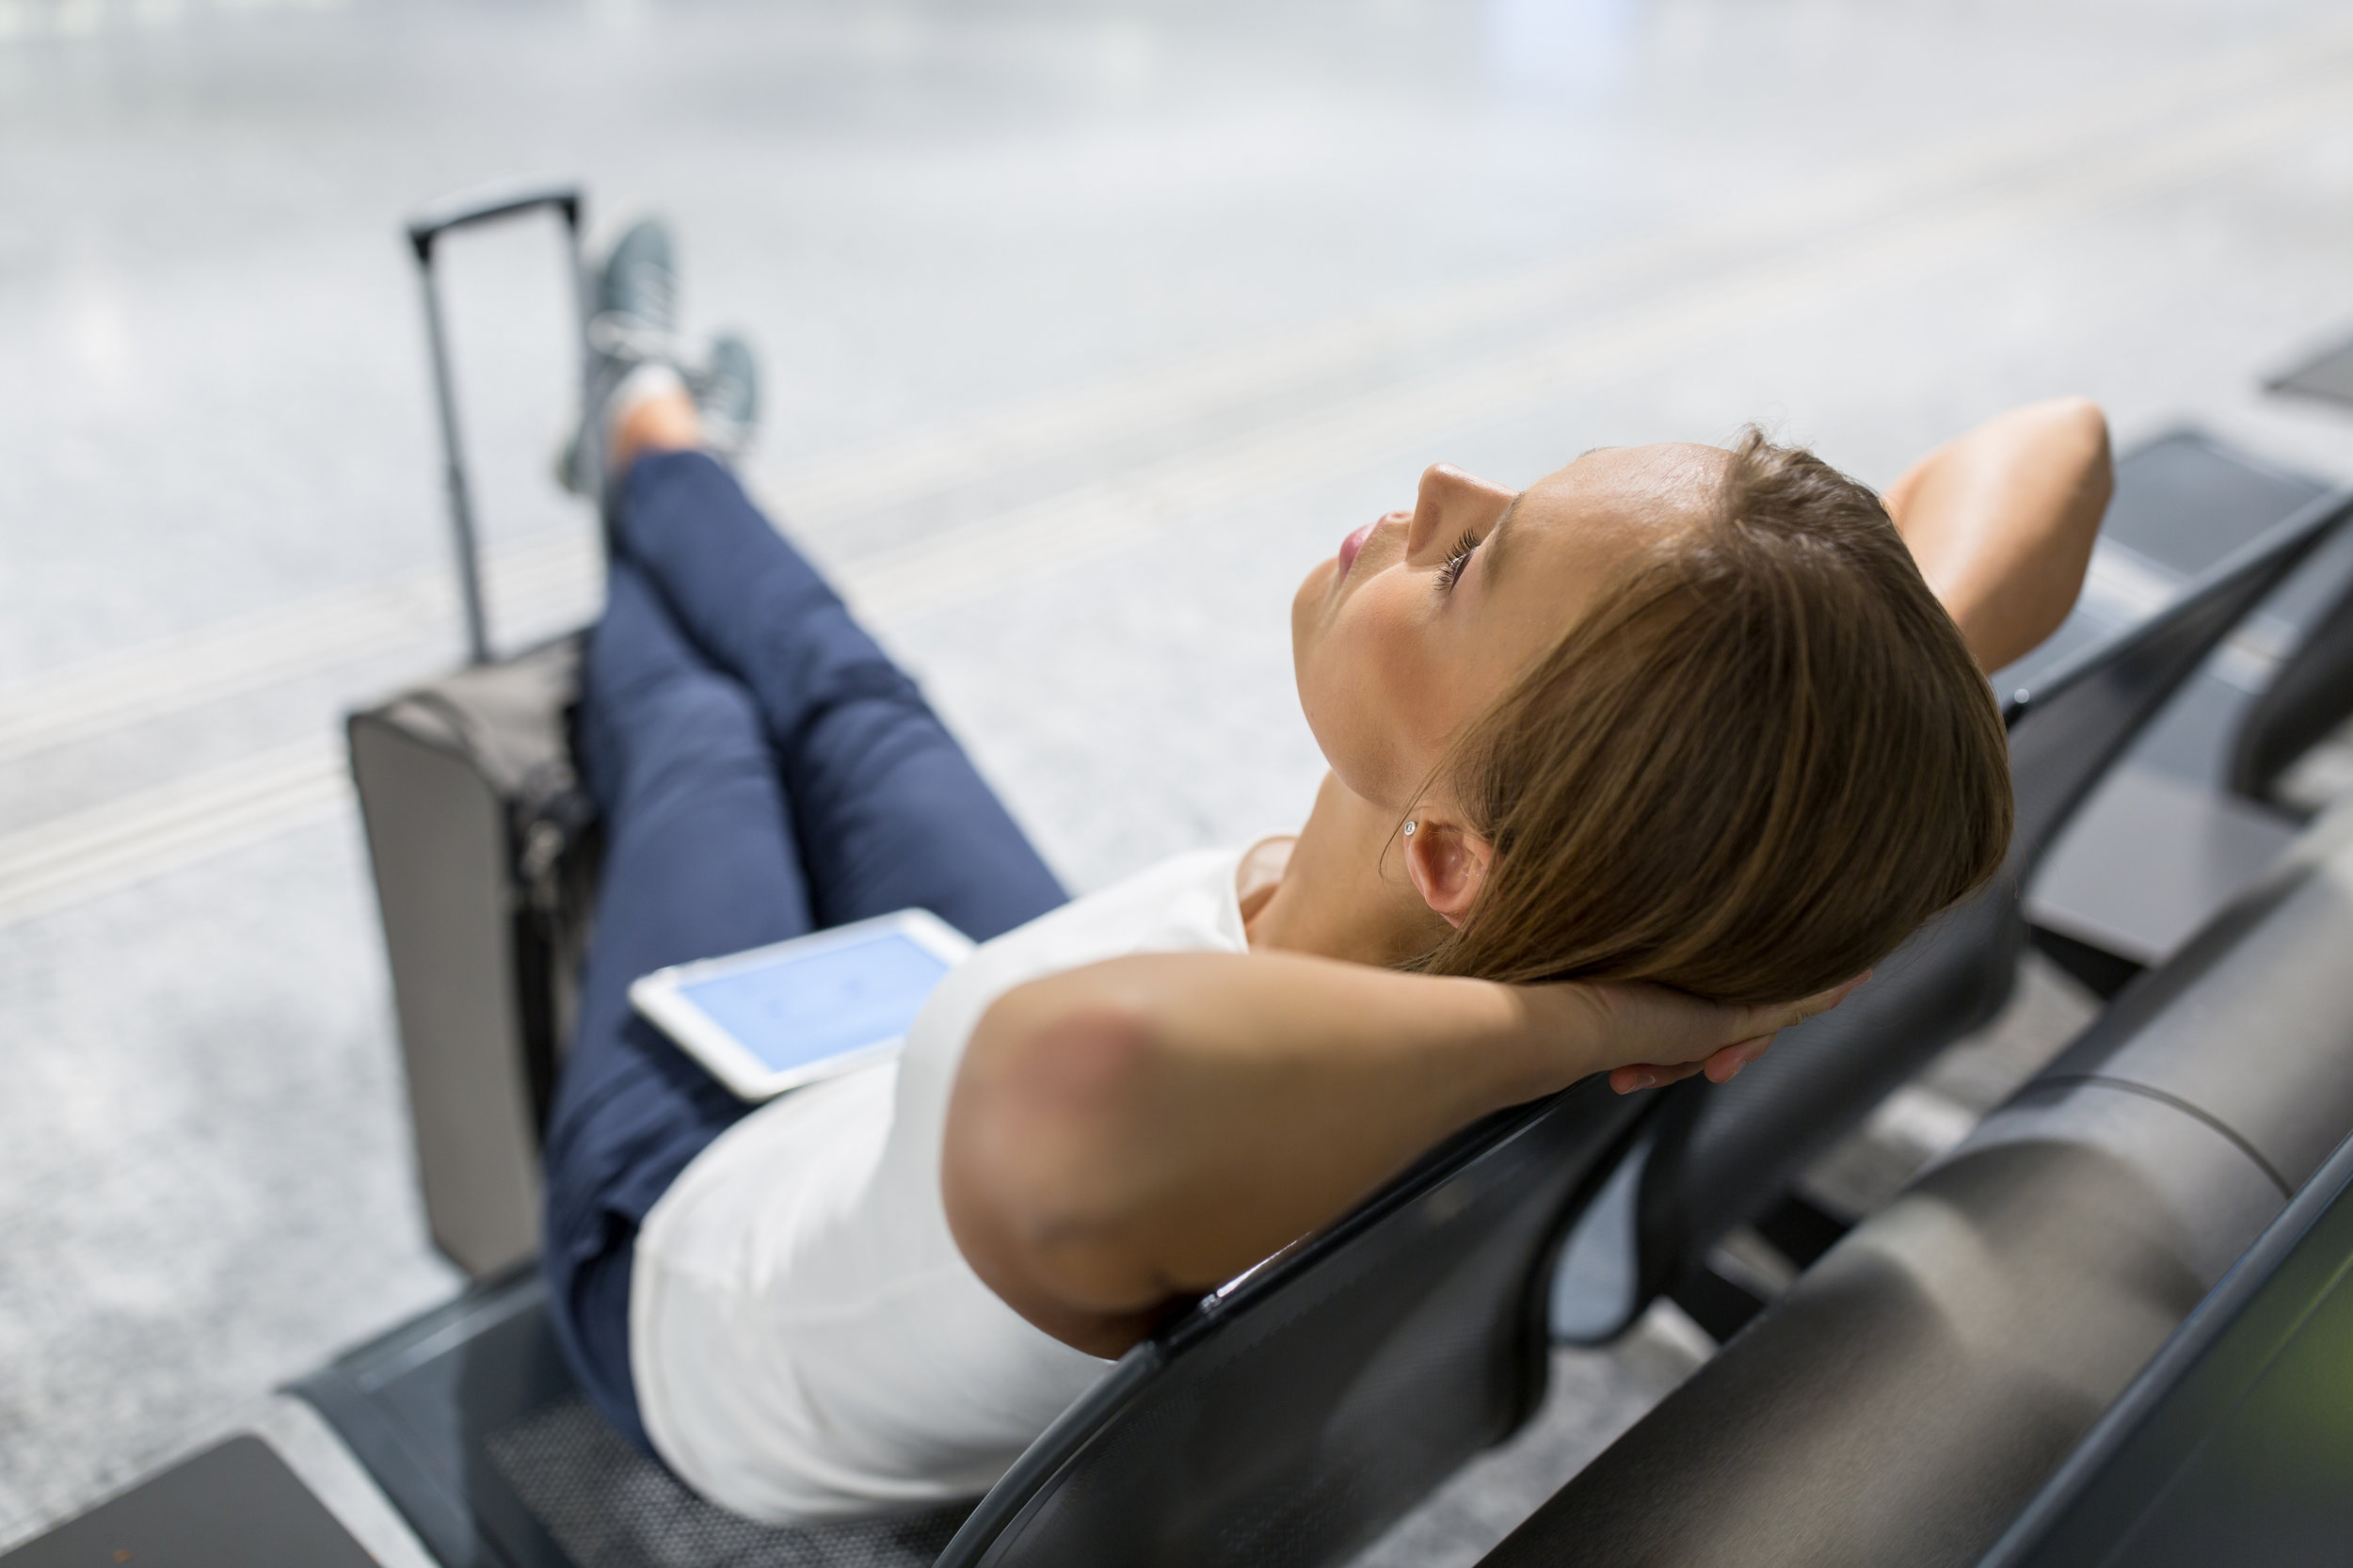 Young woman in airport.jpg